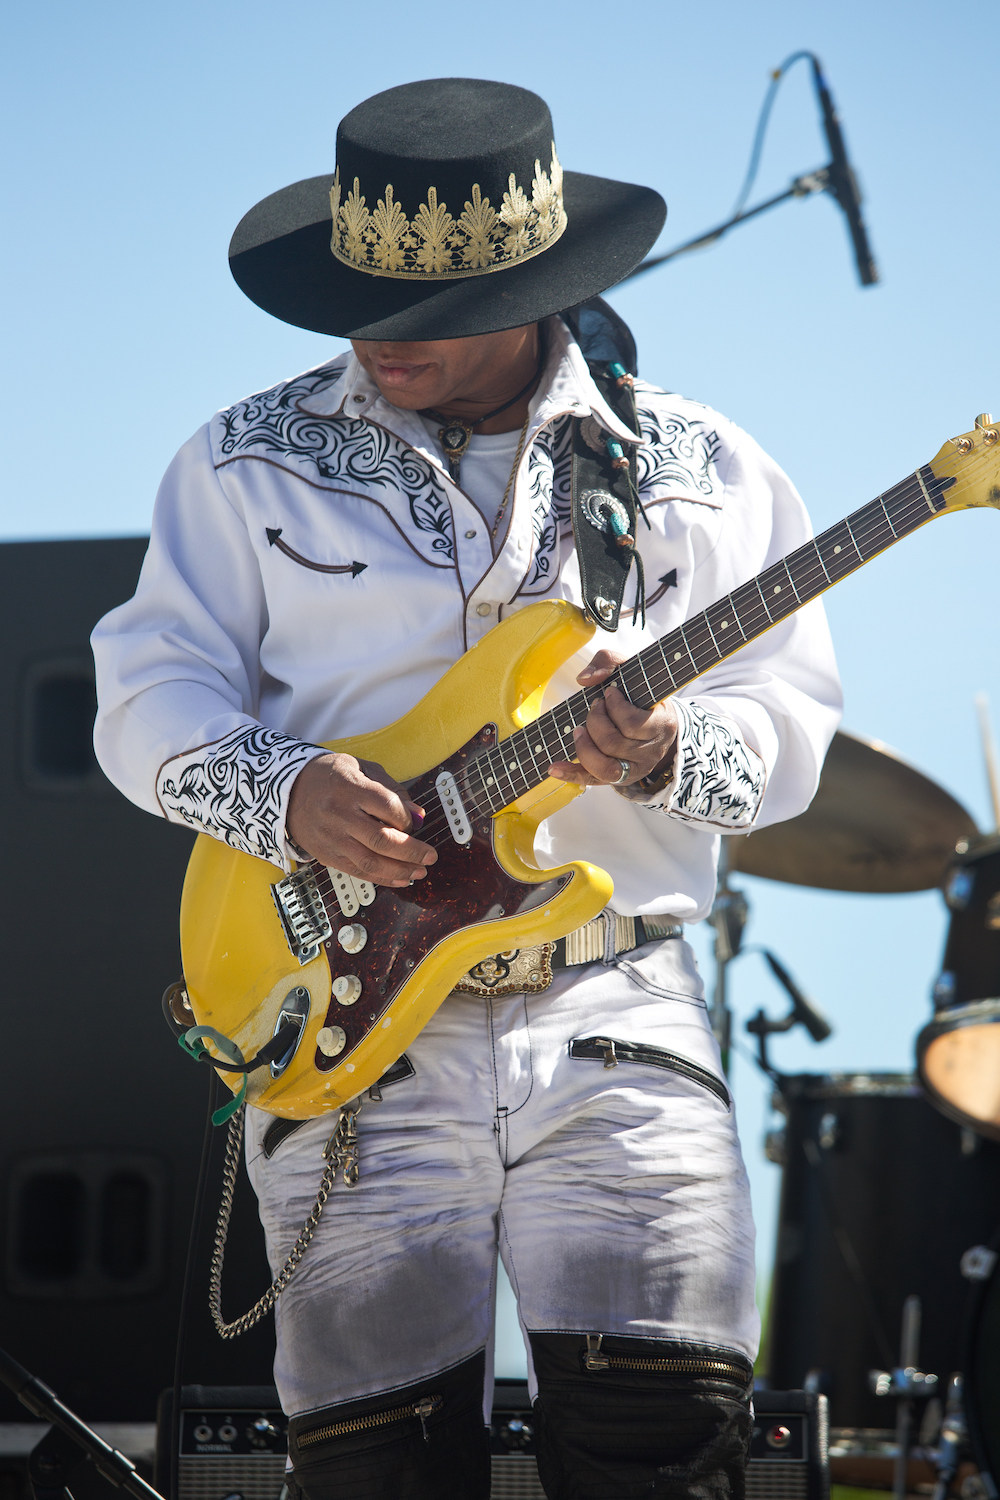 Troy Turner © Baton Rouge Blues Festival/Kevin Duffy